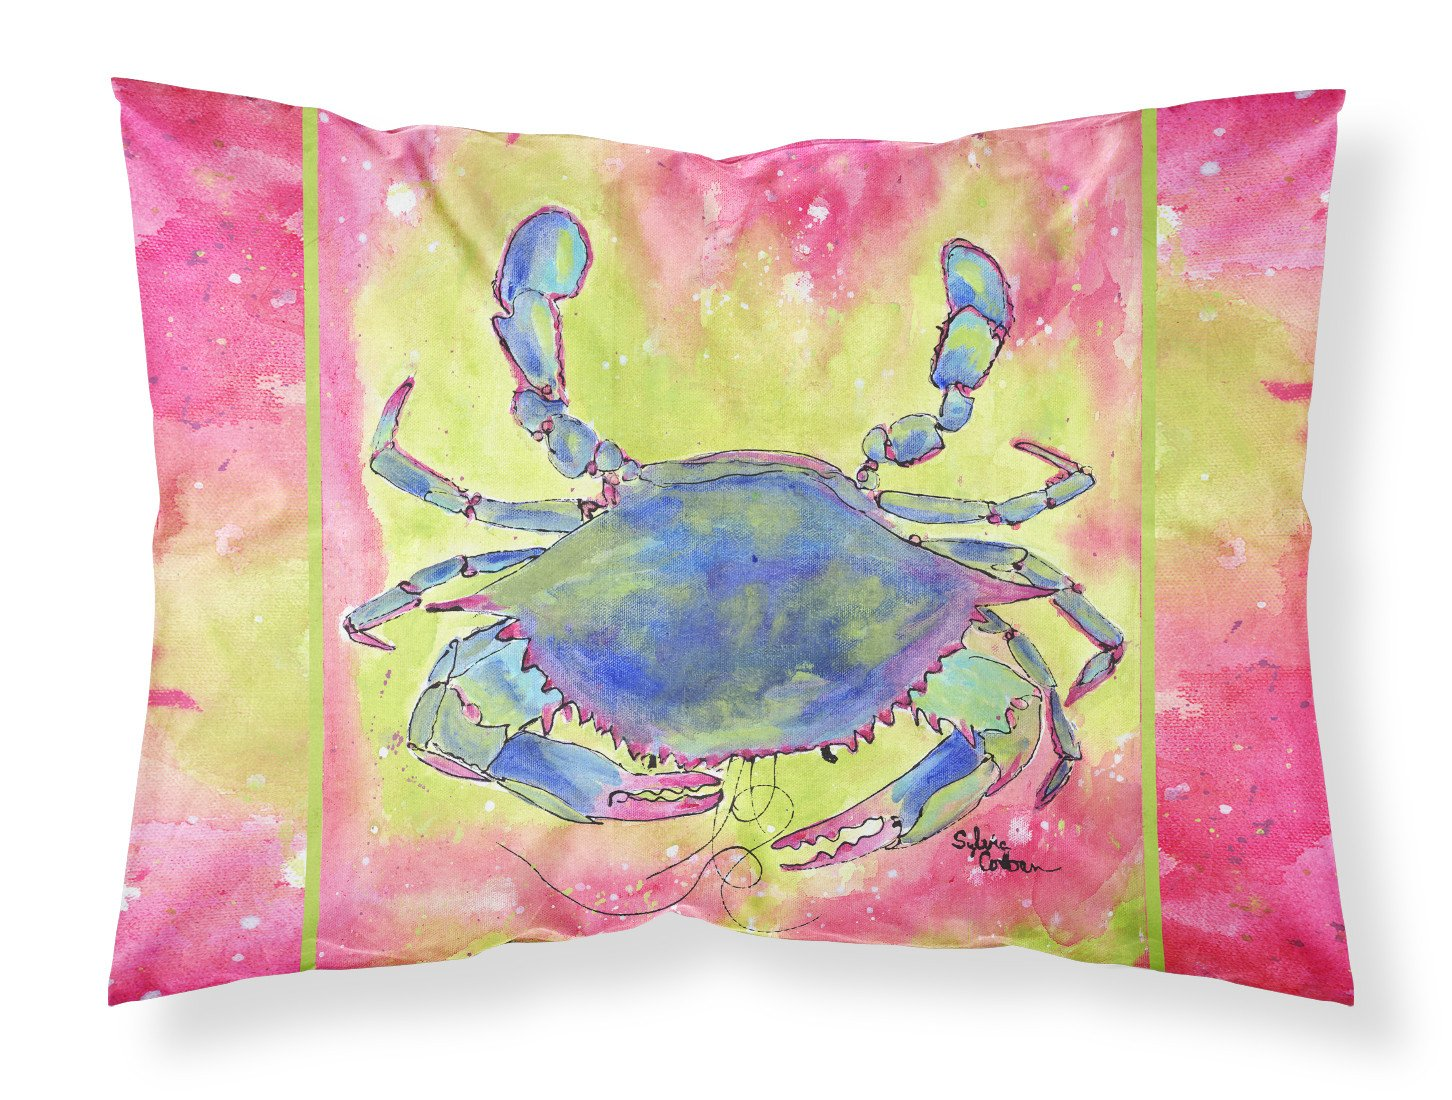 Crab Moisture wicking Fabric standard pillowcase by Caroline's Treasures